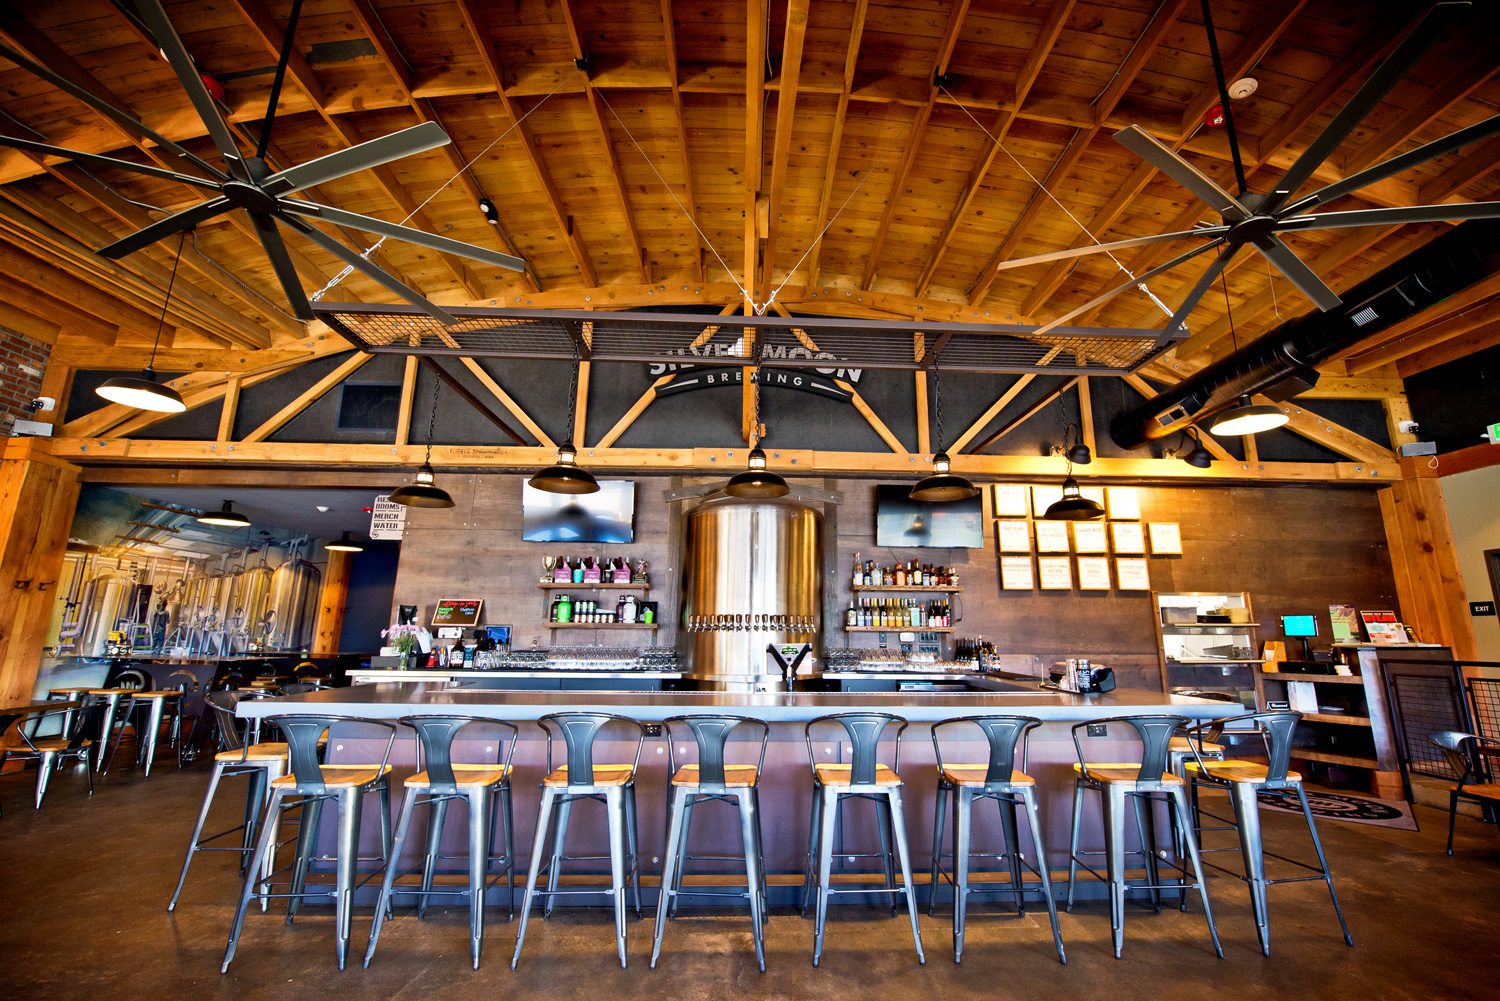 Seven seats at a bar under an arched wooden roof